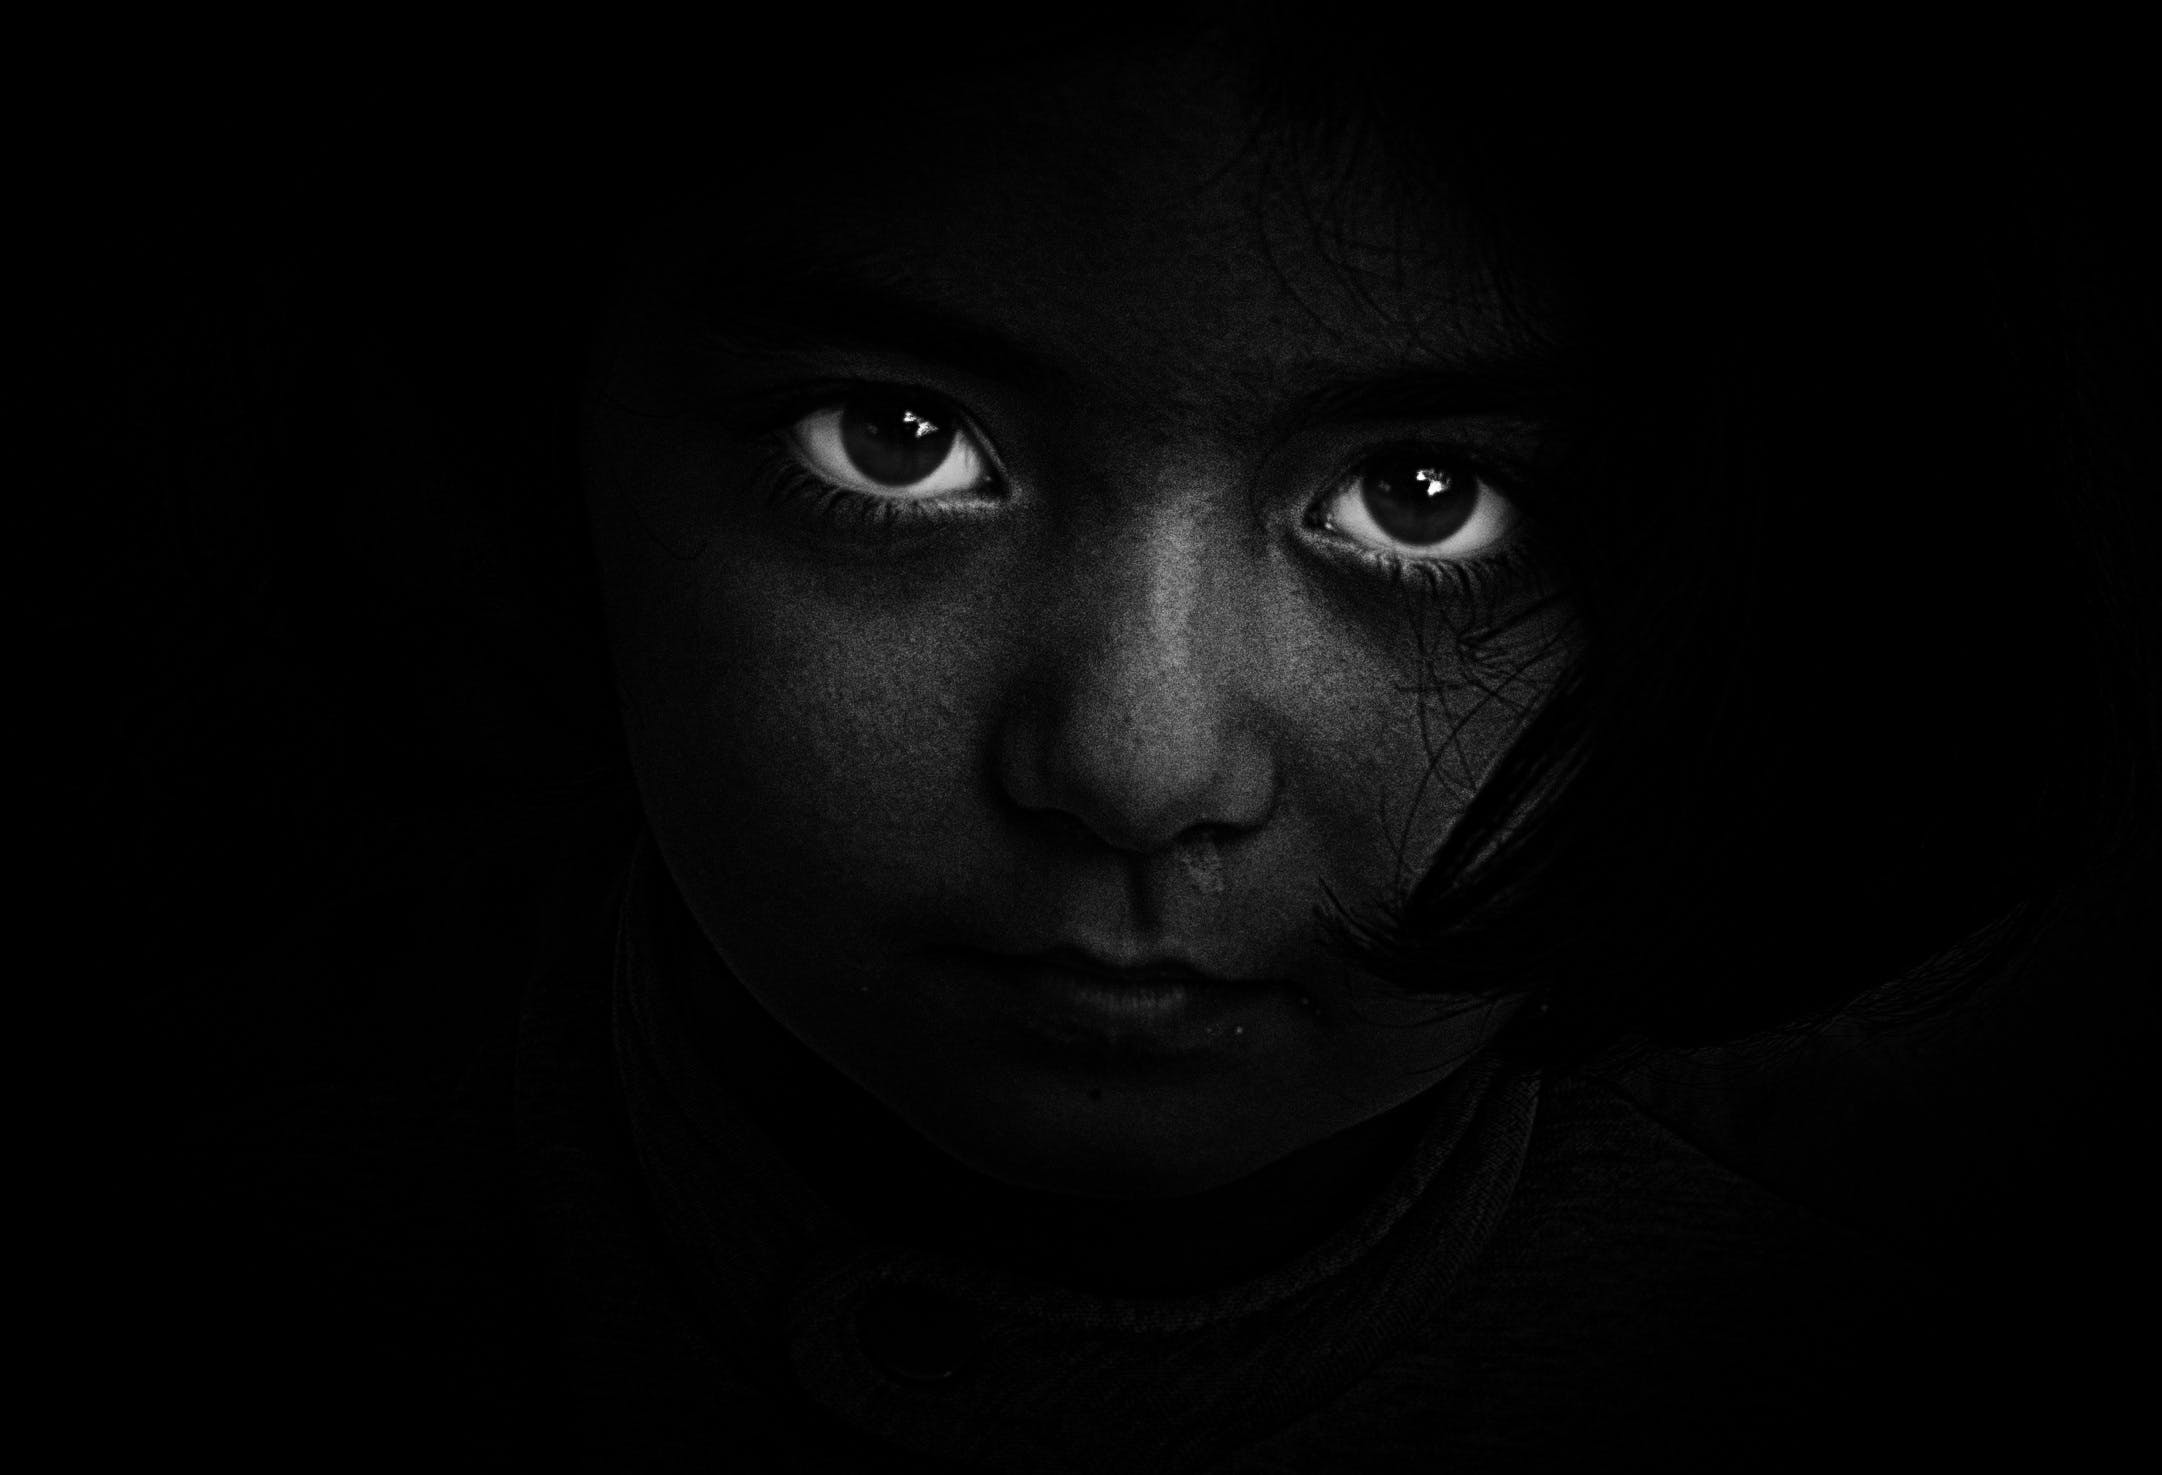 Black And White Portrait Hd Wallpapers